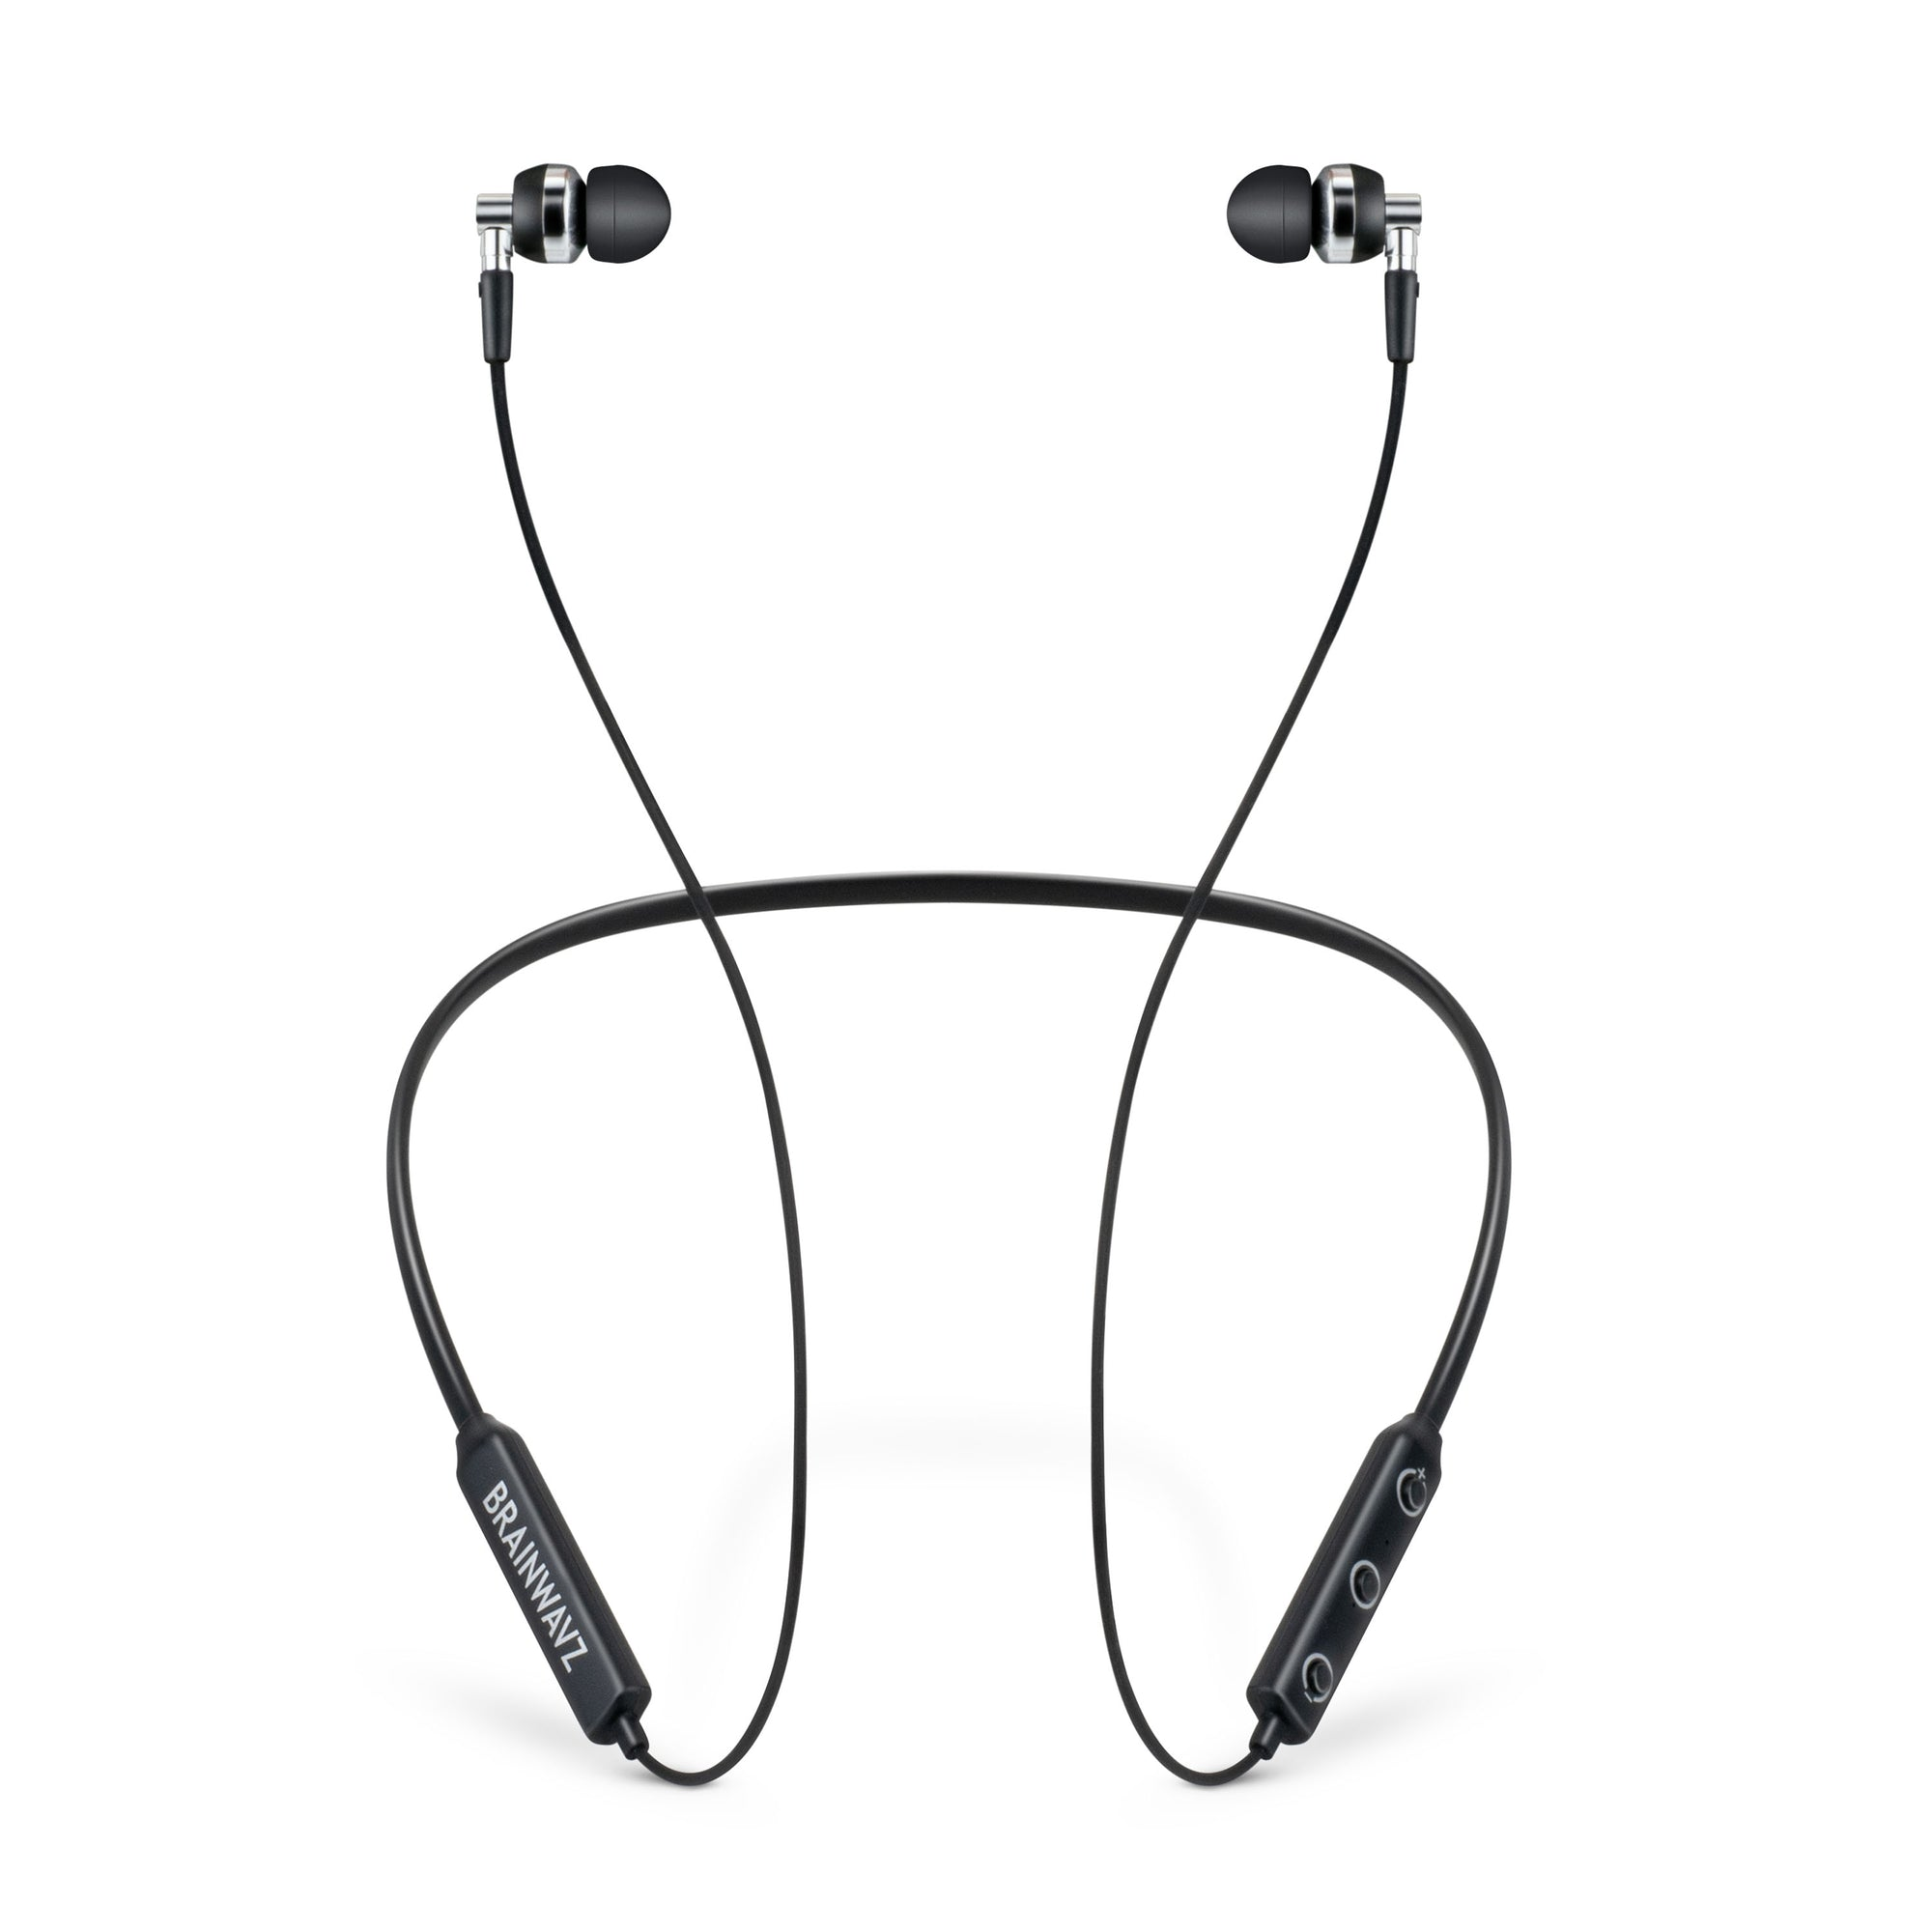 BLU-M2 Wireless Bluetooth Earphones